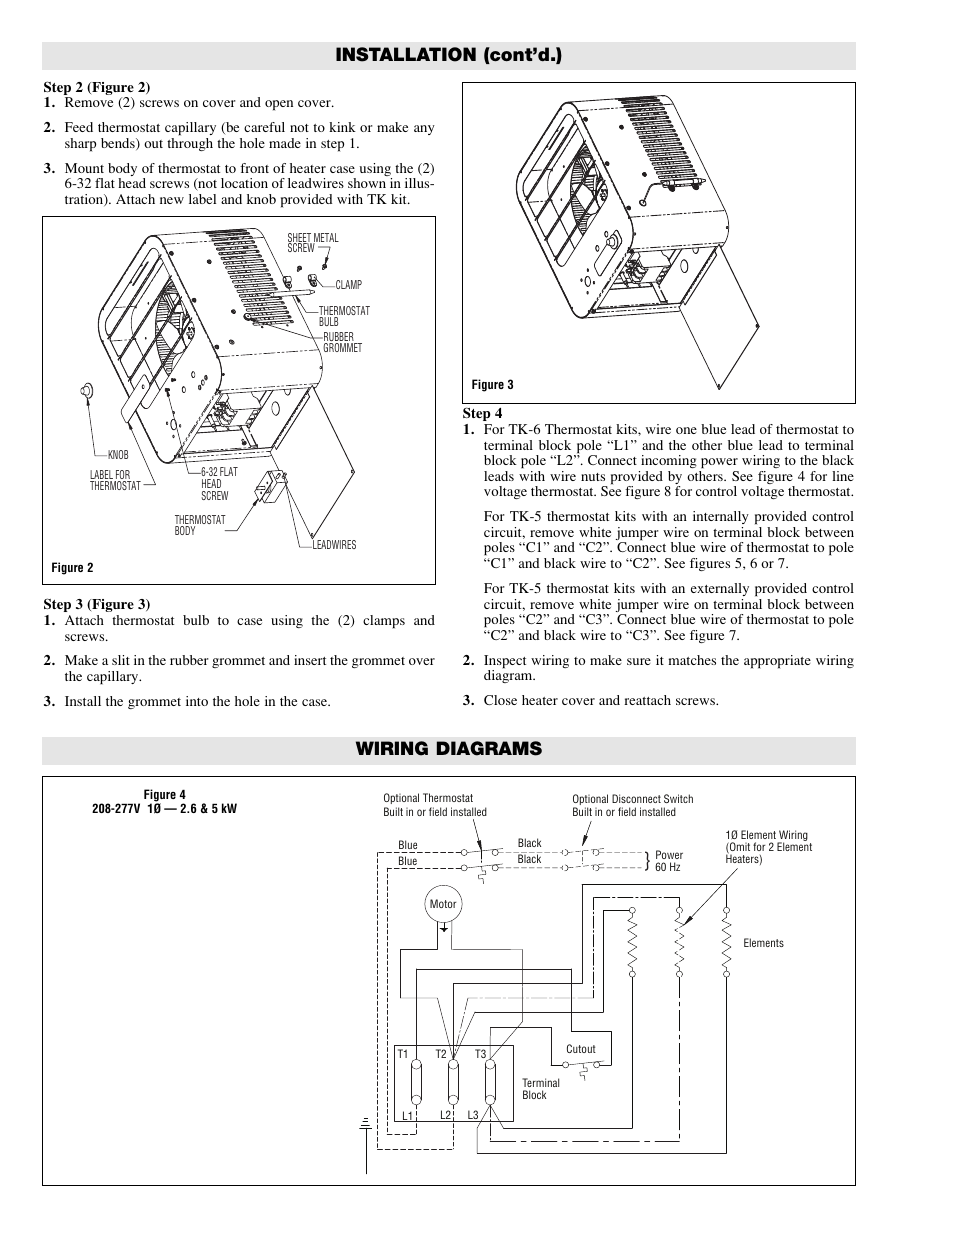 Capillary Thermostat Wiring Diagram Auto Electrical Trx450es Installation Cont U2019d Diagrams